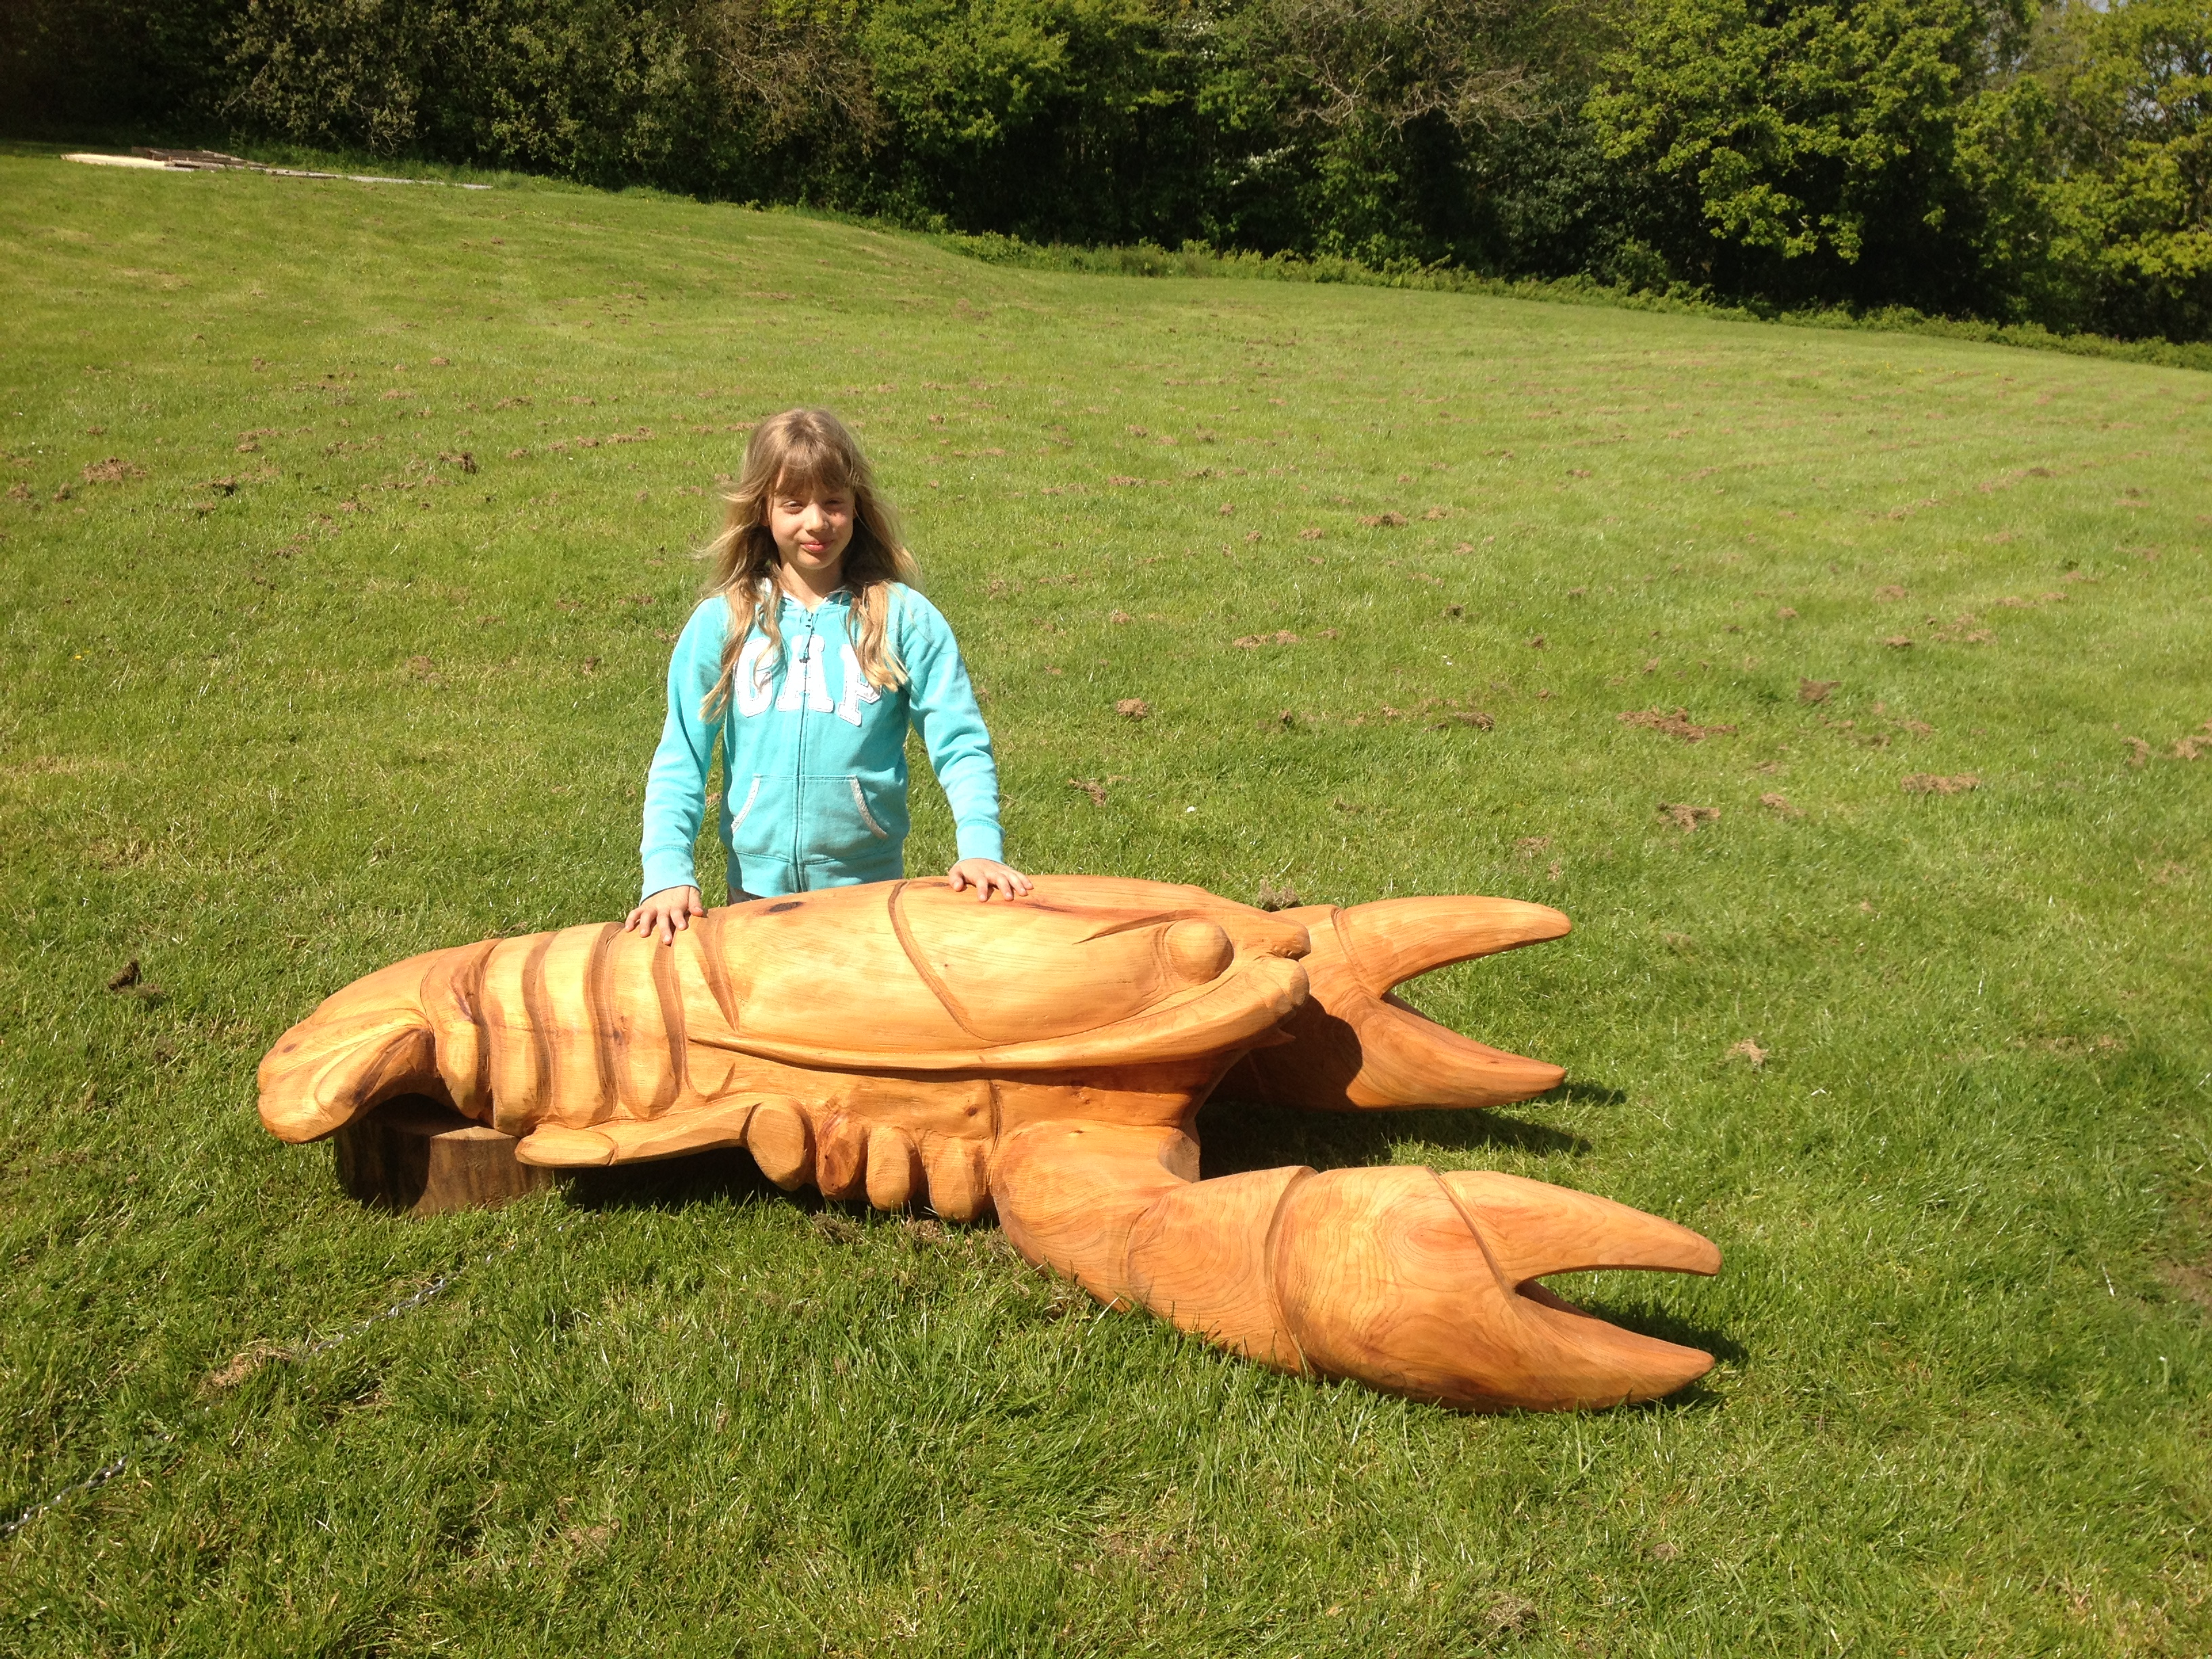 Giant crayfish sculpture installed at Roadford reservoir